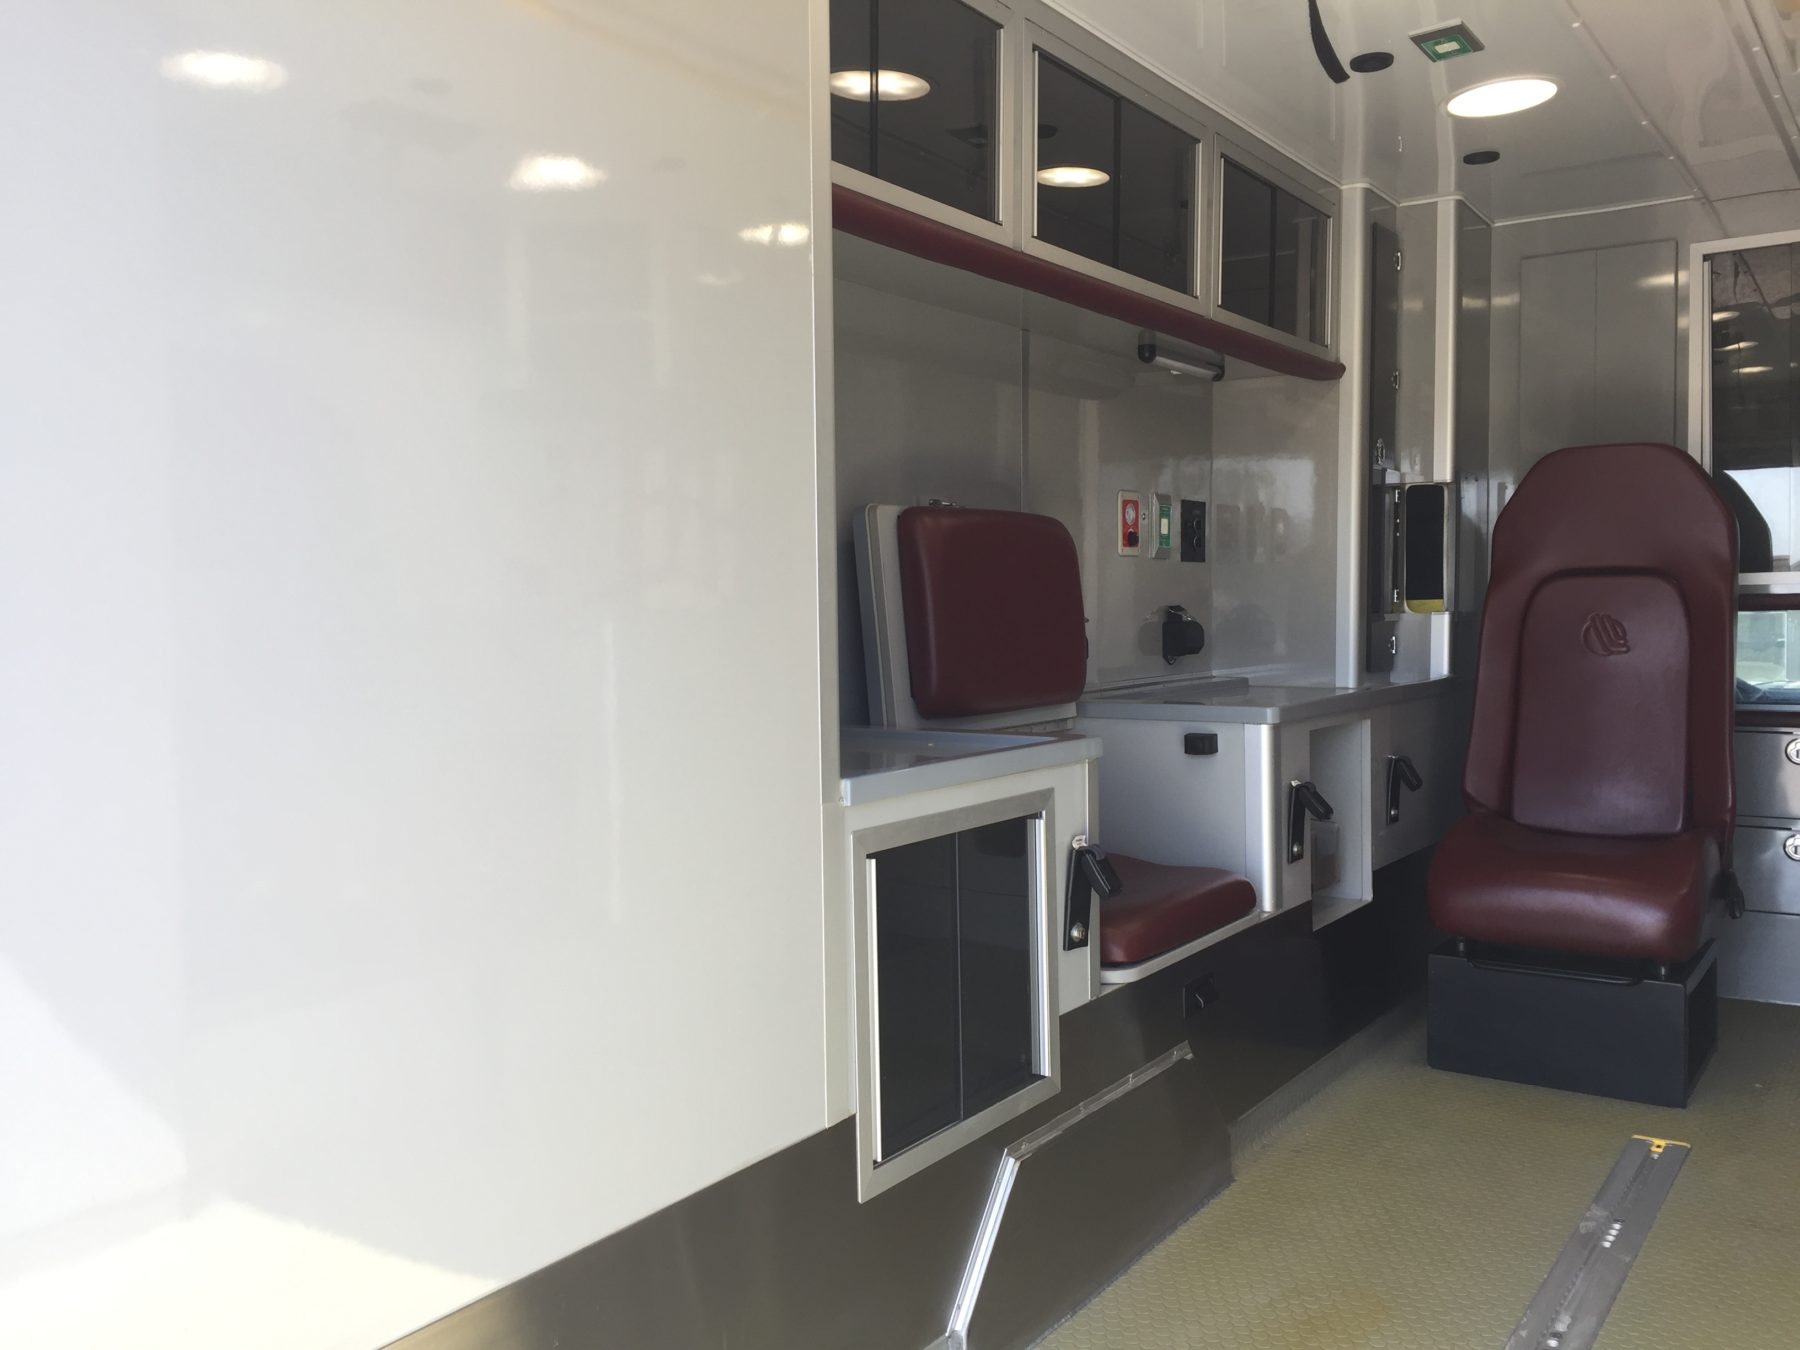 2015 Ford F450 4x4 Type 1 Ambulance For Sale – Picture 12